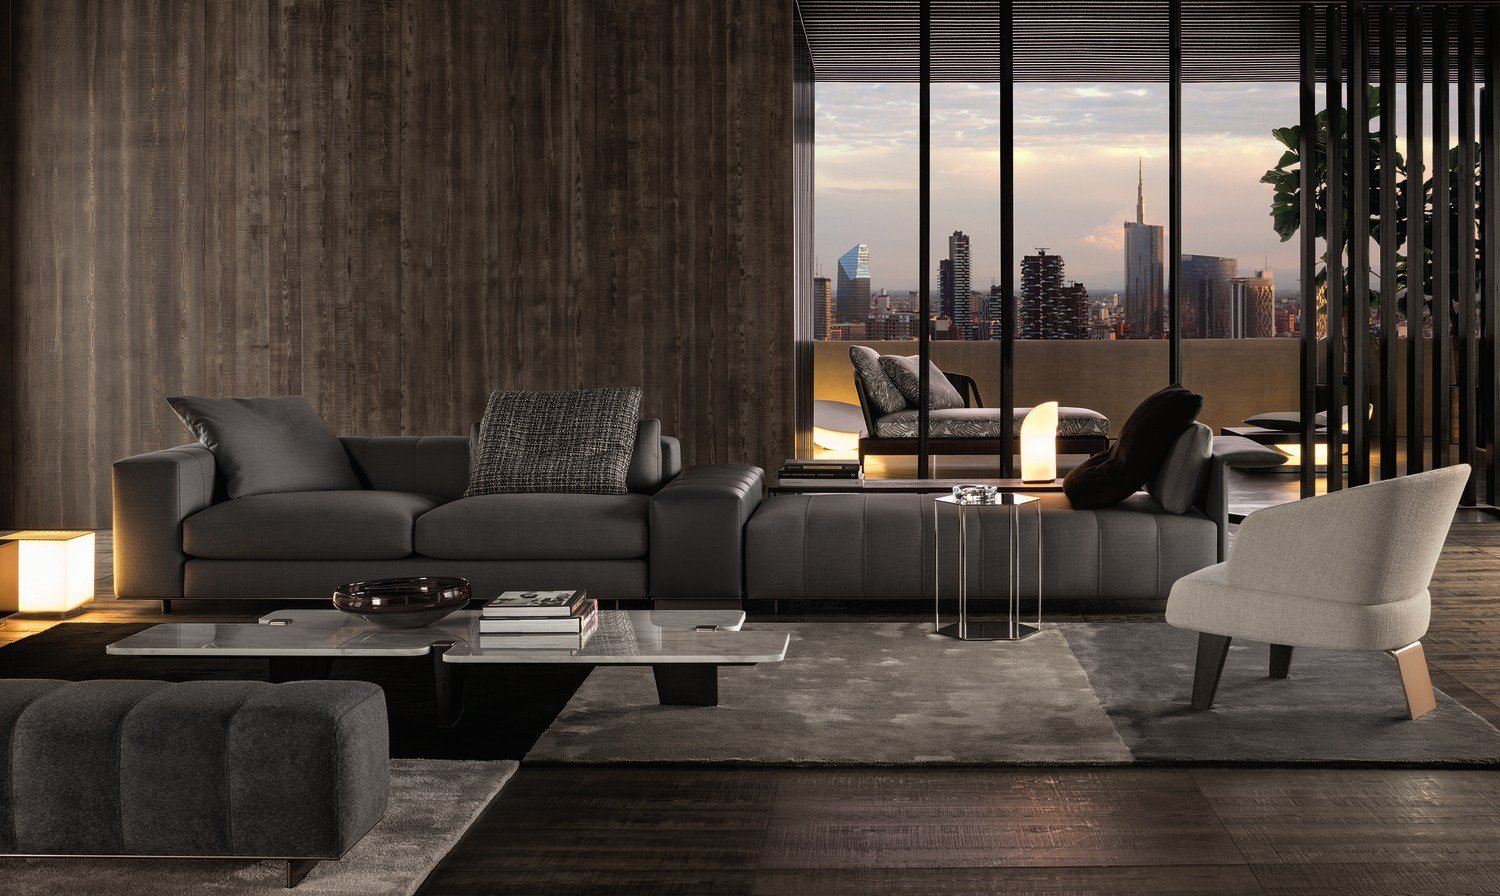 Sofa freeman seating system by minotti - Chaise salle a manger avec accoudoir ...